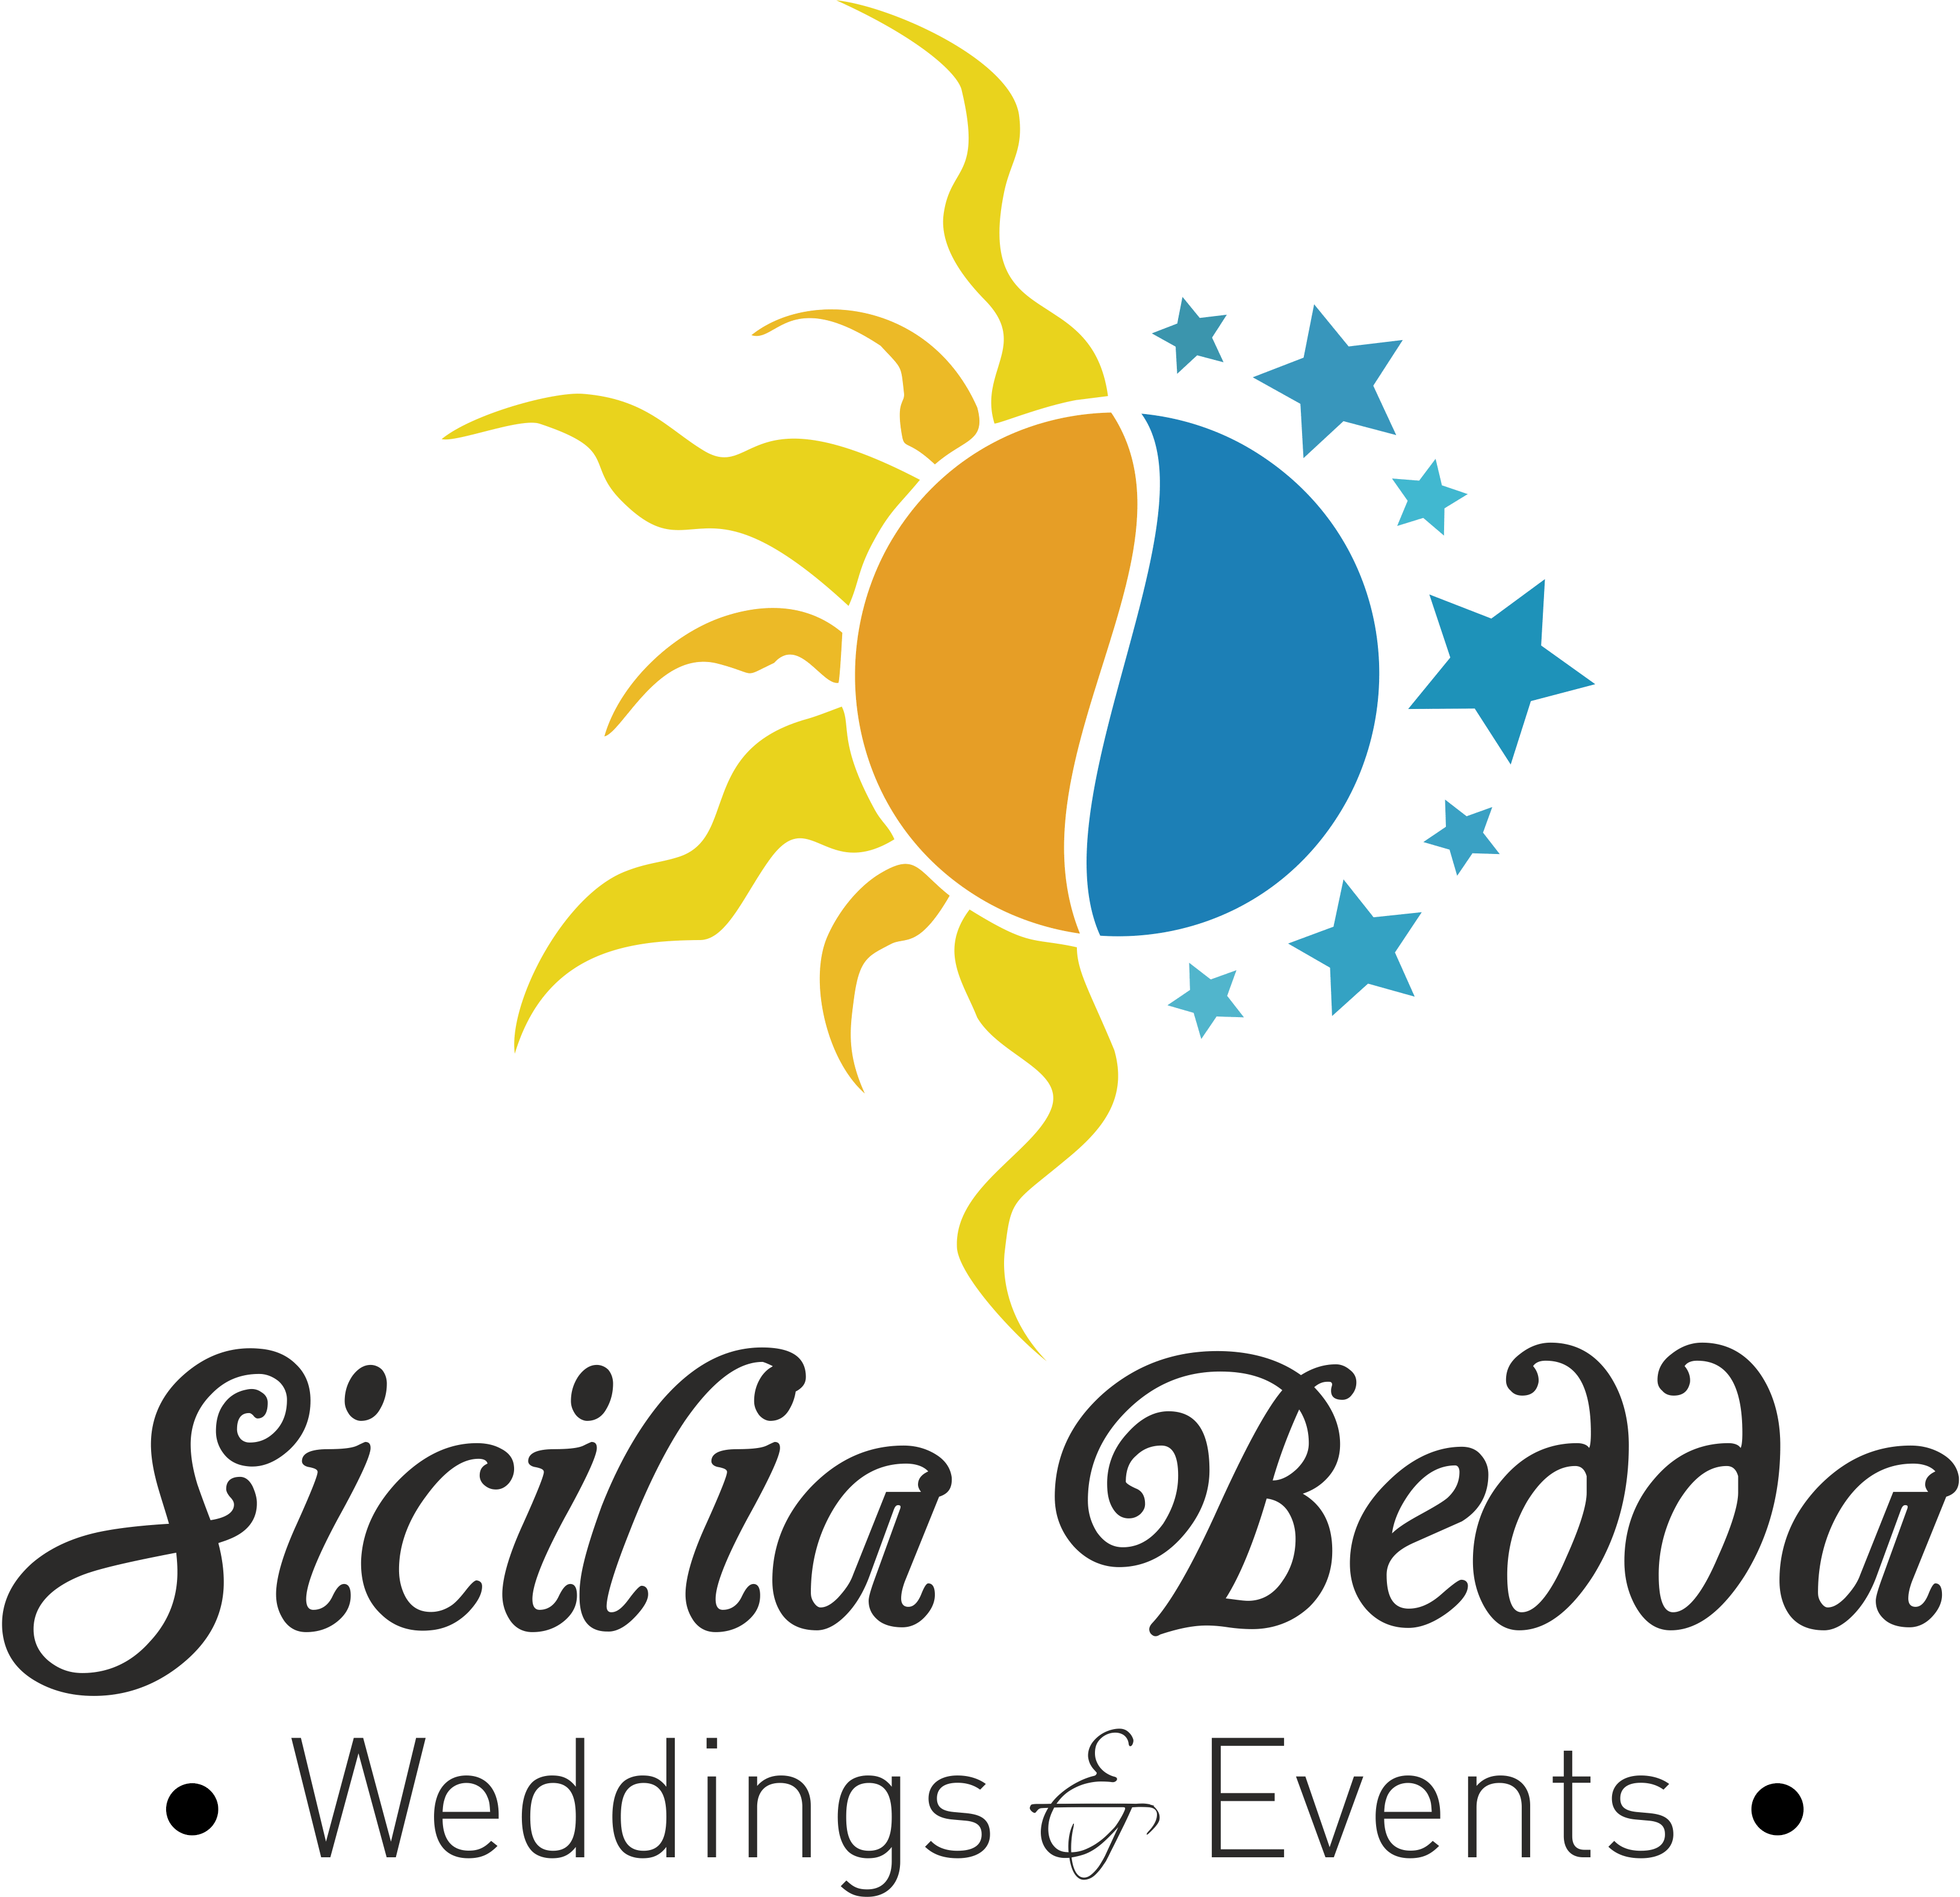 Sicilia Bedda Weddings and Events in Sicily